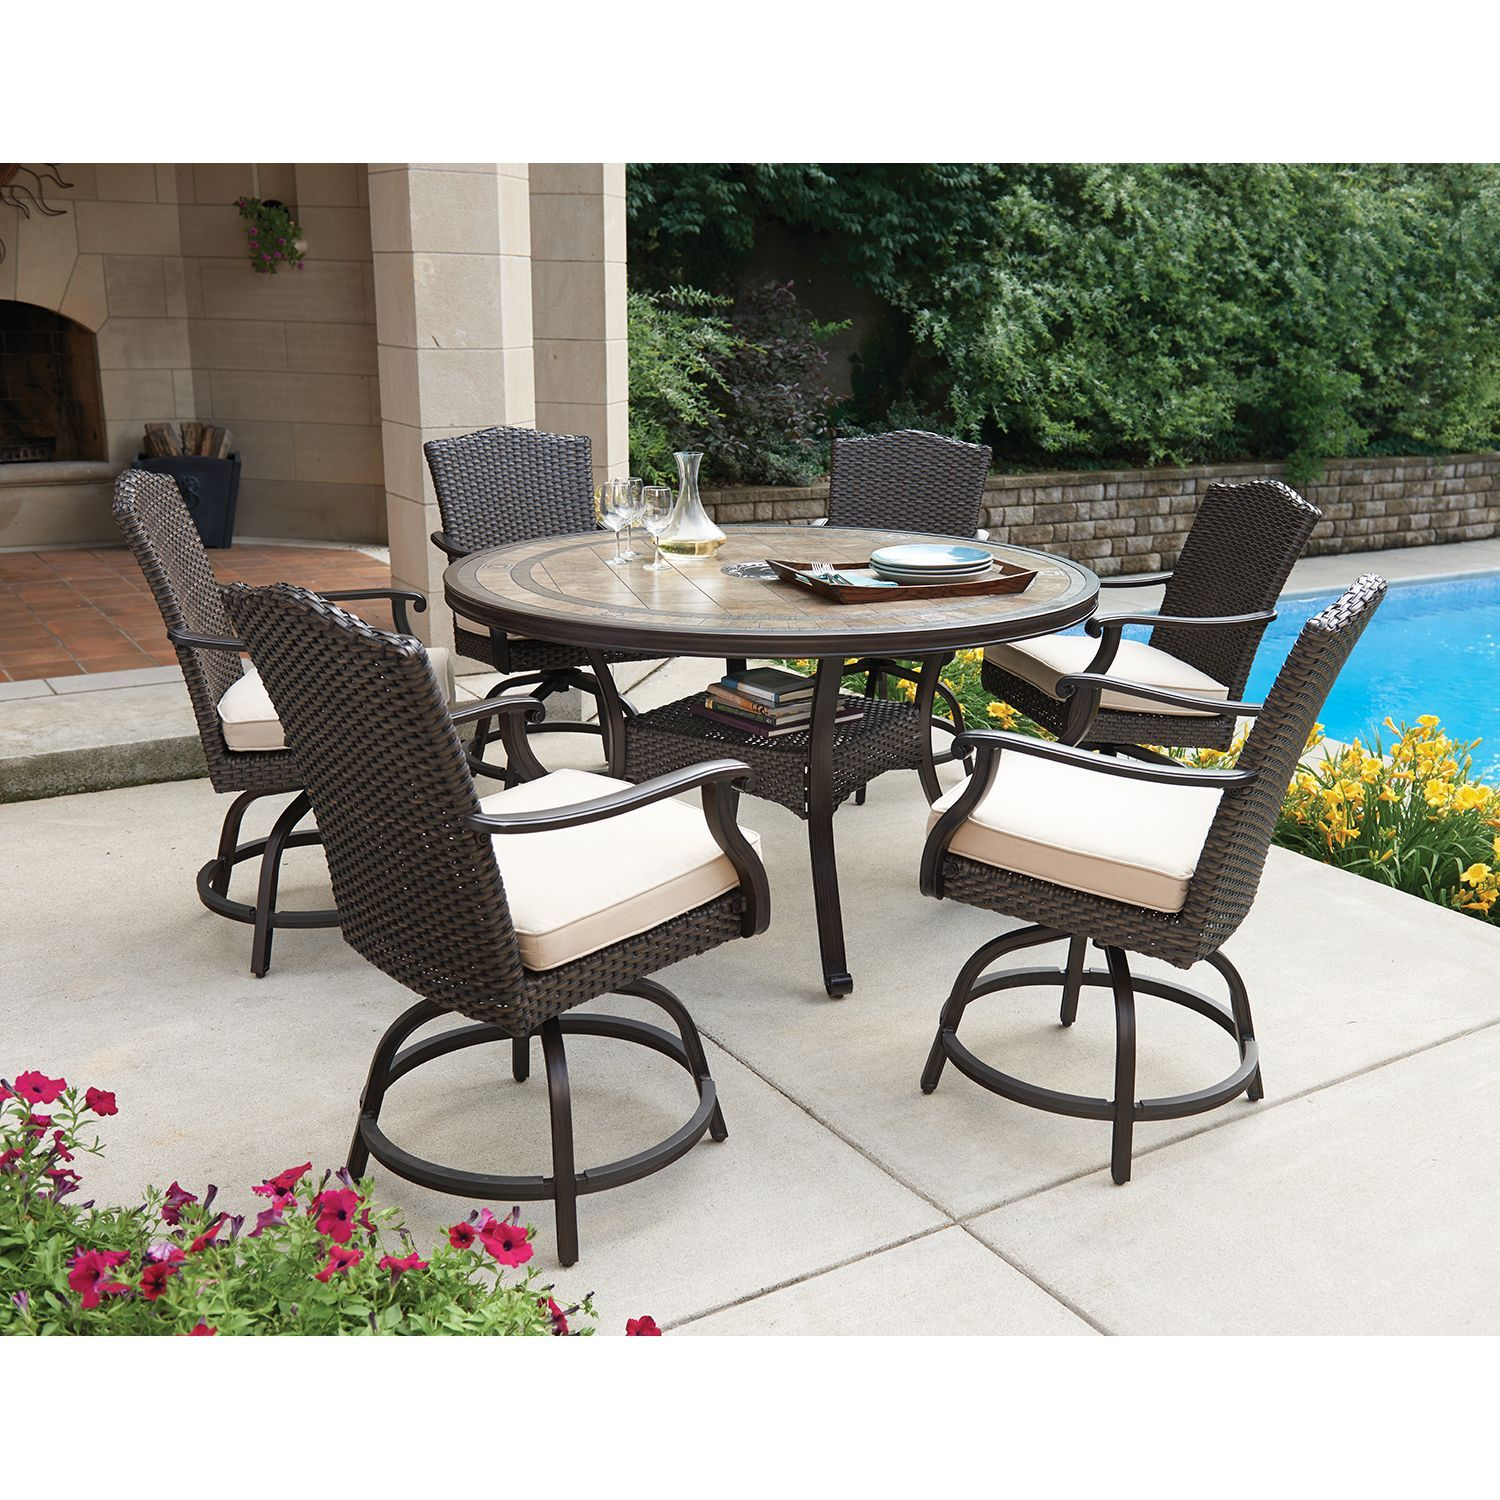 Members mark heritage 7 piece balcony height dining set with premium sunbrella fabrics sams club